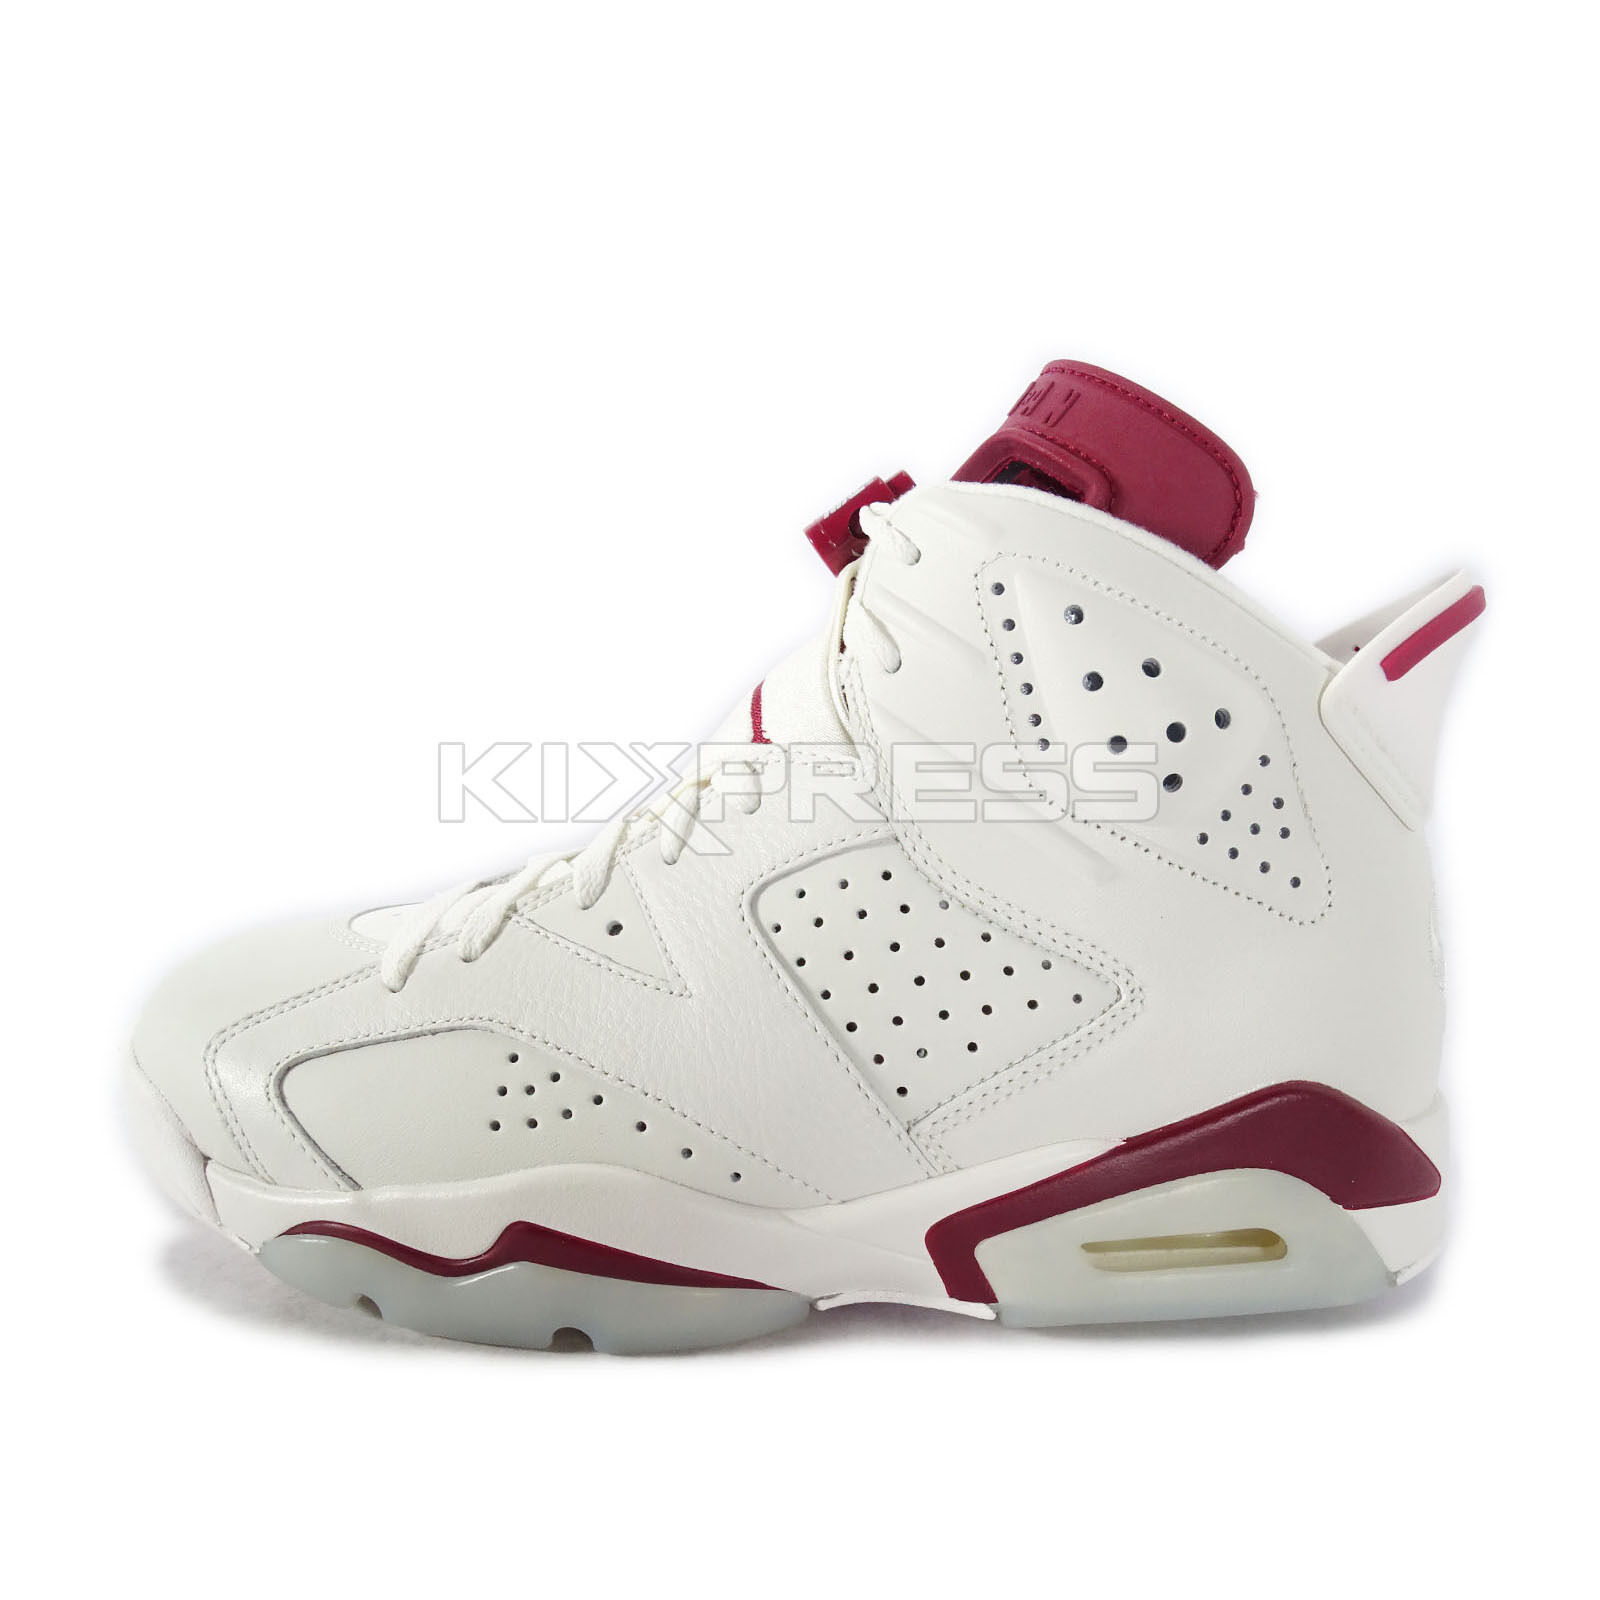 Nike Air Jordan 6 Retro [384664-116] Basketball Off White/New Maroon OFF WHITE/NEW MAROON 384664-11...